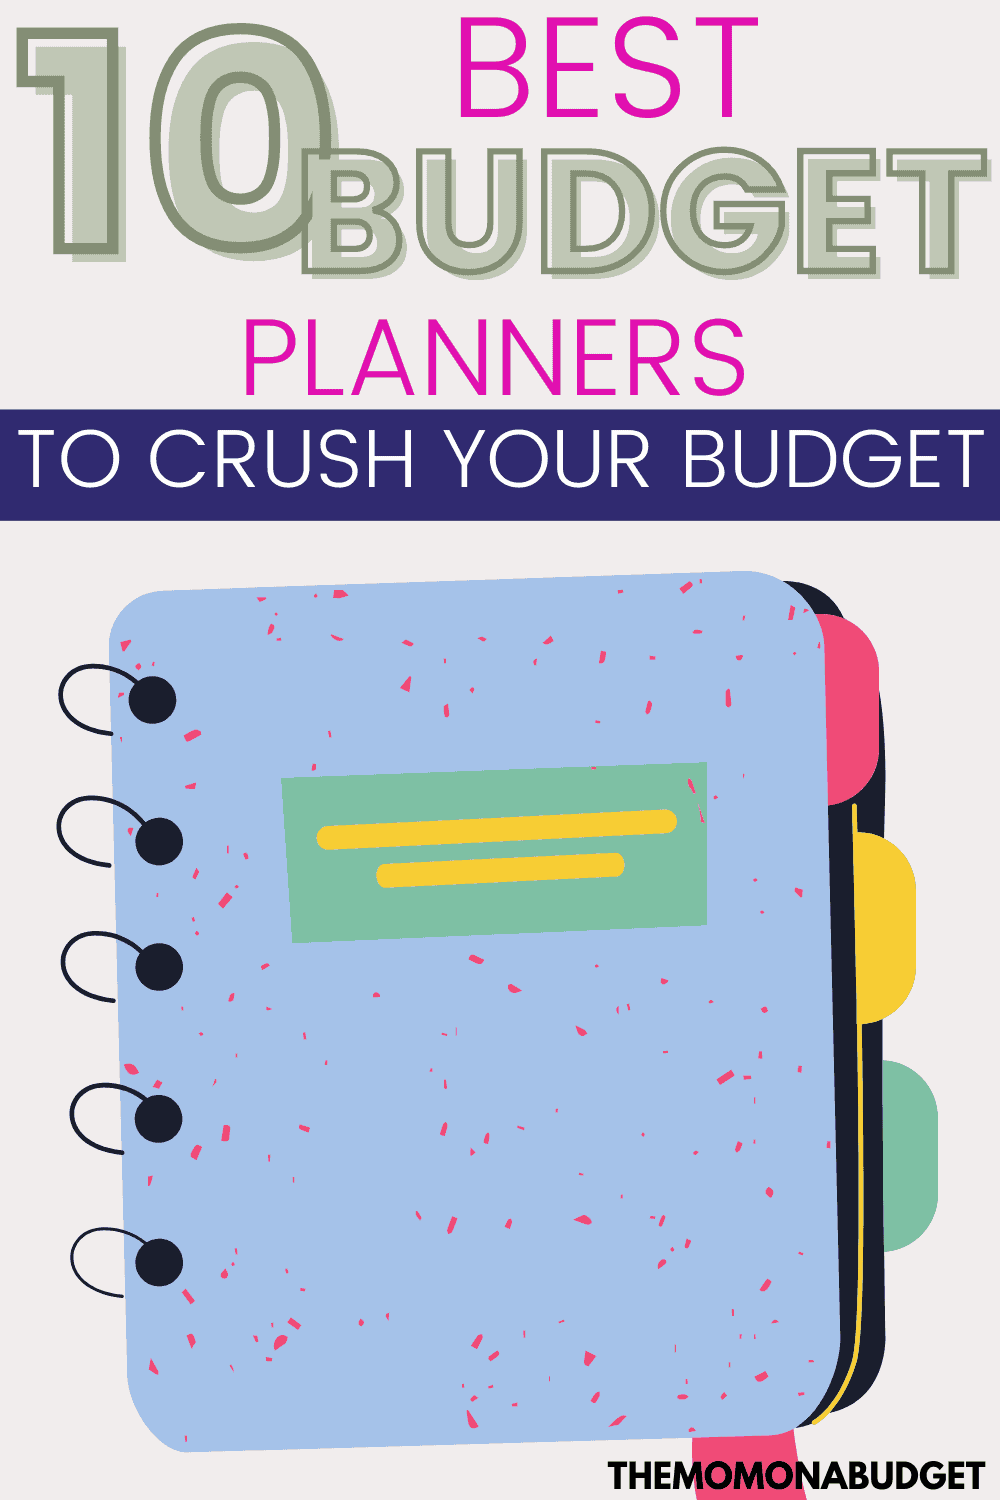 10 best budget planners